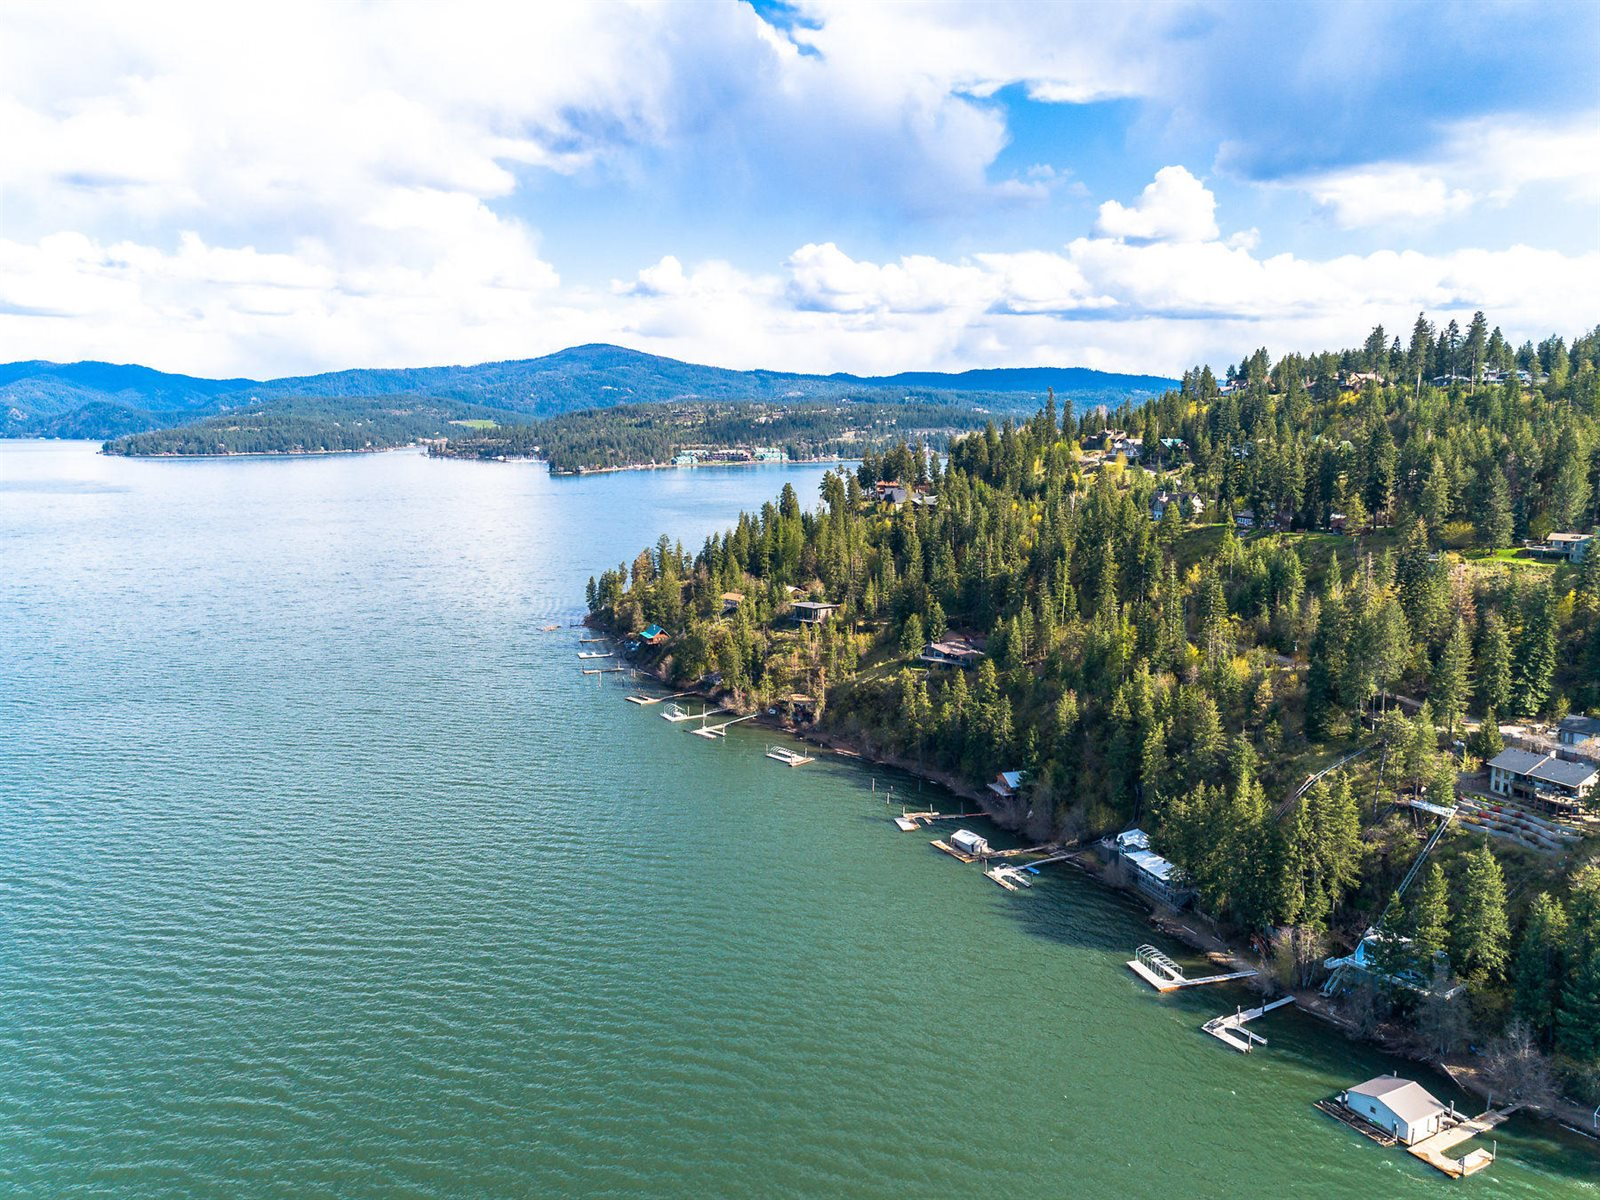 1083 West Steamboat Dr, Coeur d'Alene, ID 83814